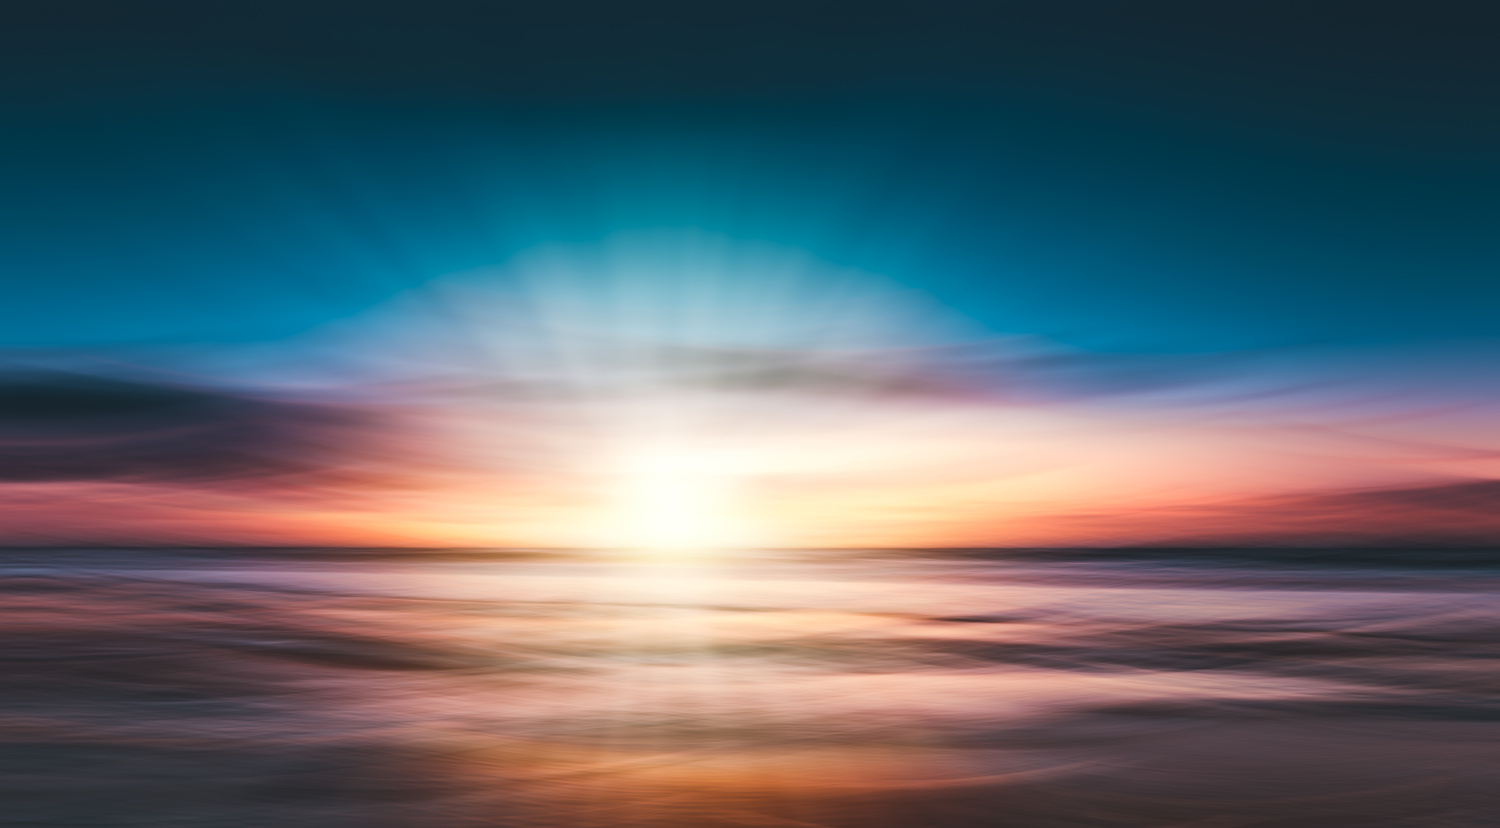 Sunset at the beach by Joost Lagerweij